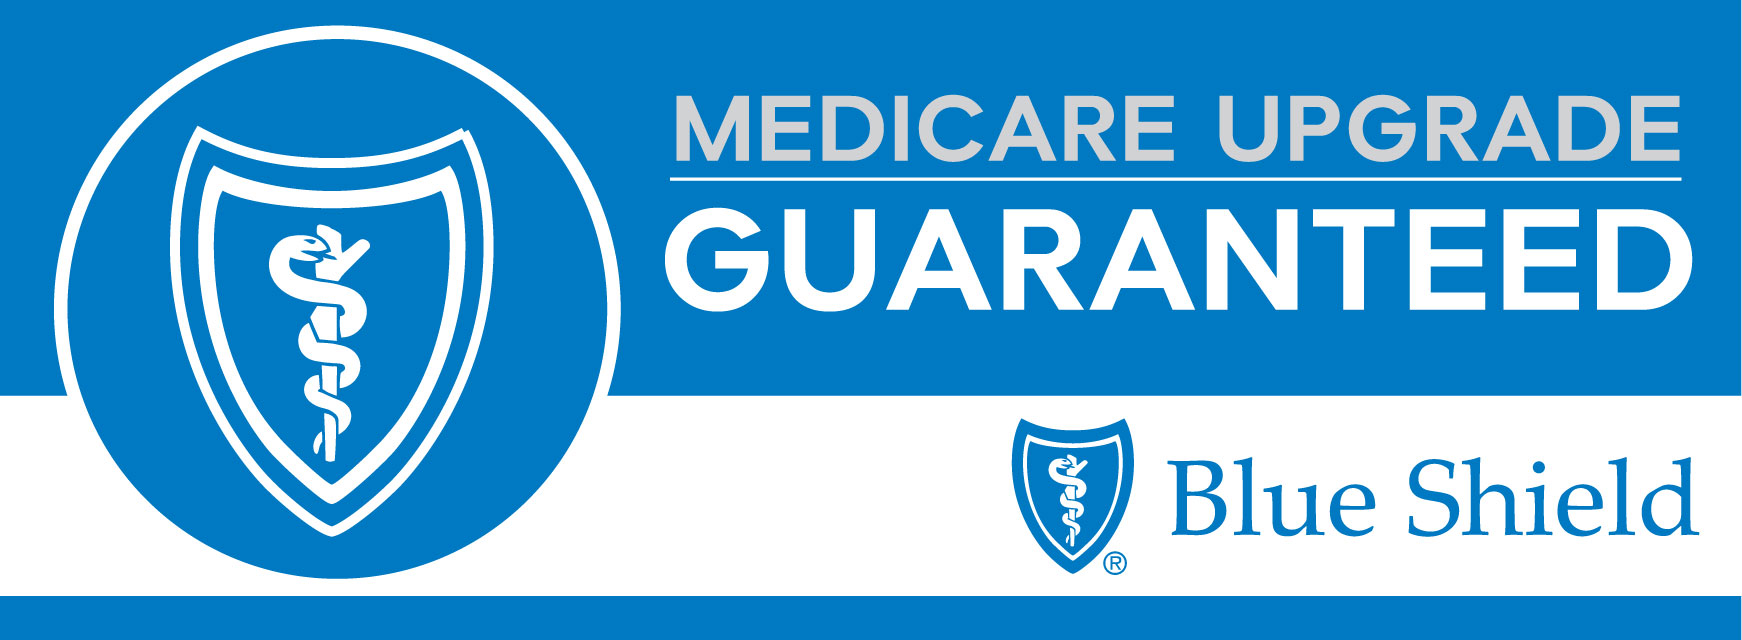 medicare-blue-shield-guarantee